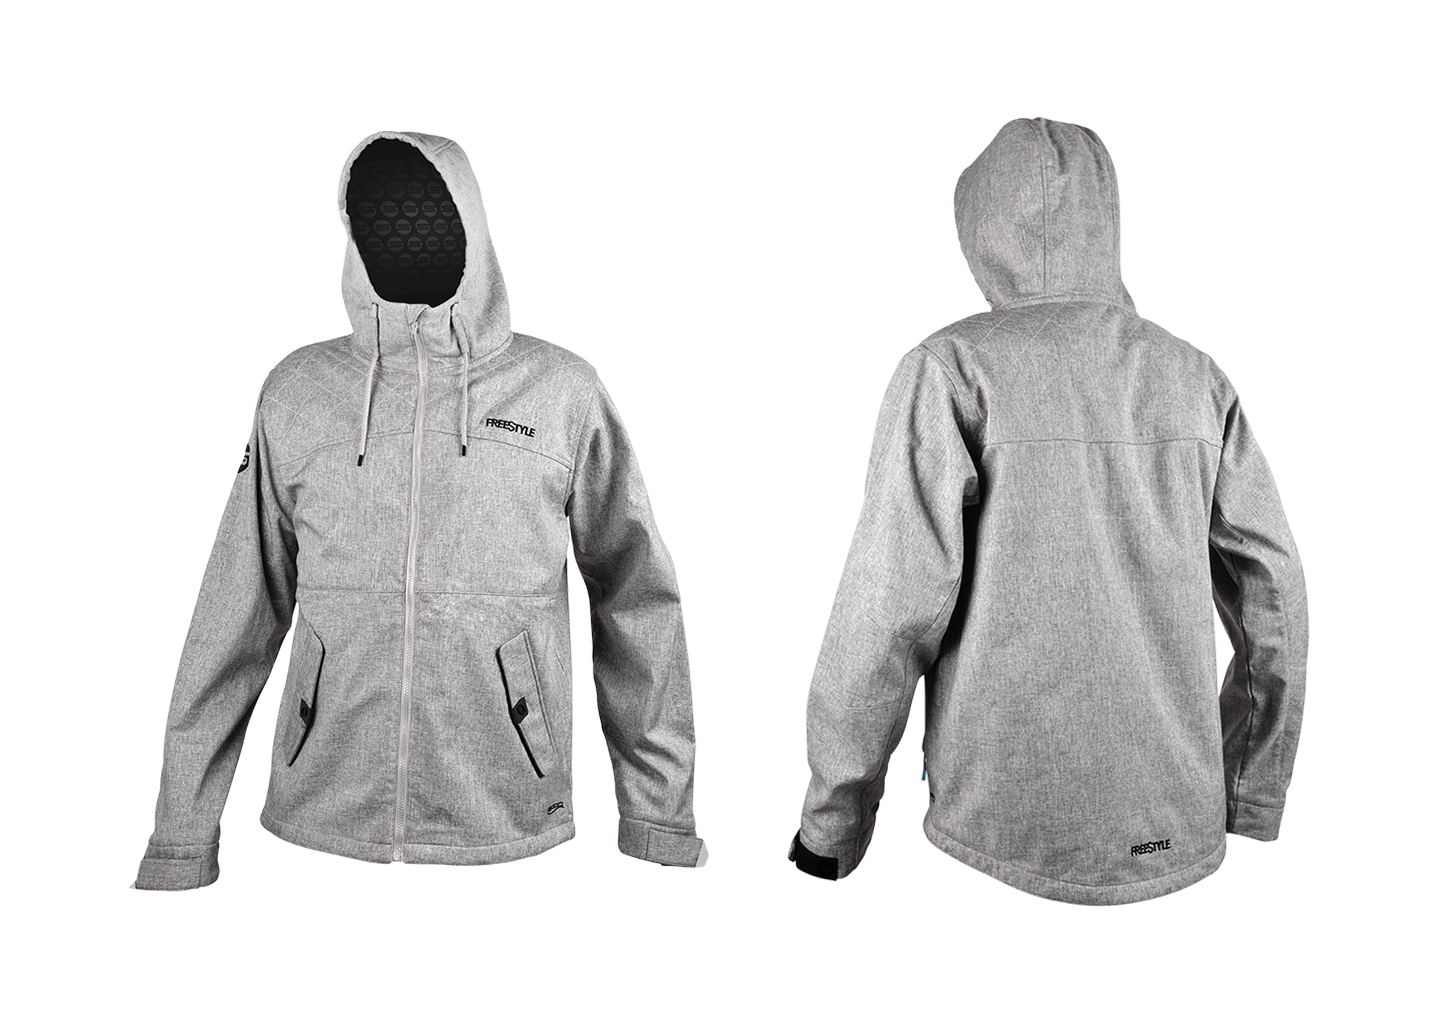 Crewman - Back and Front view